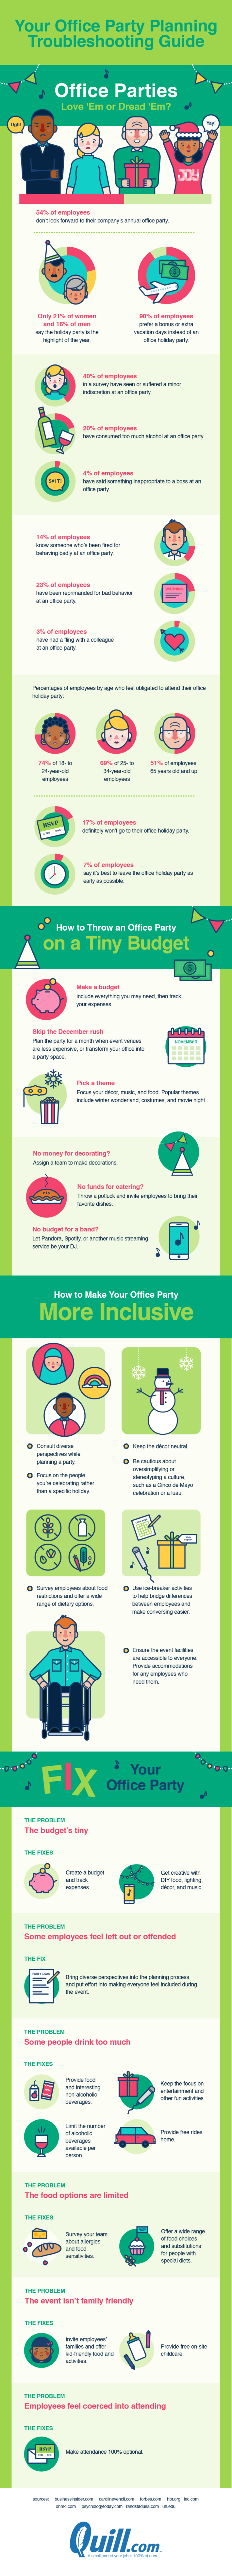 Your office party planning troubleshooting guide #infographic